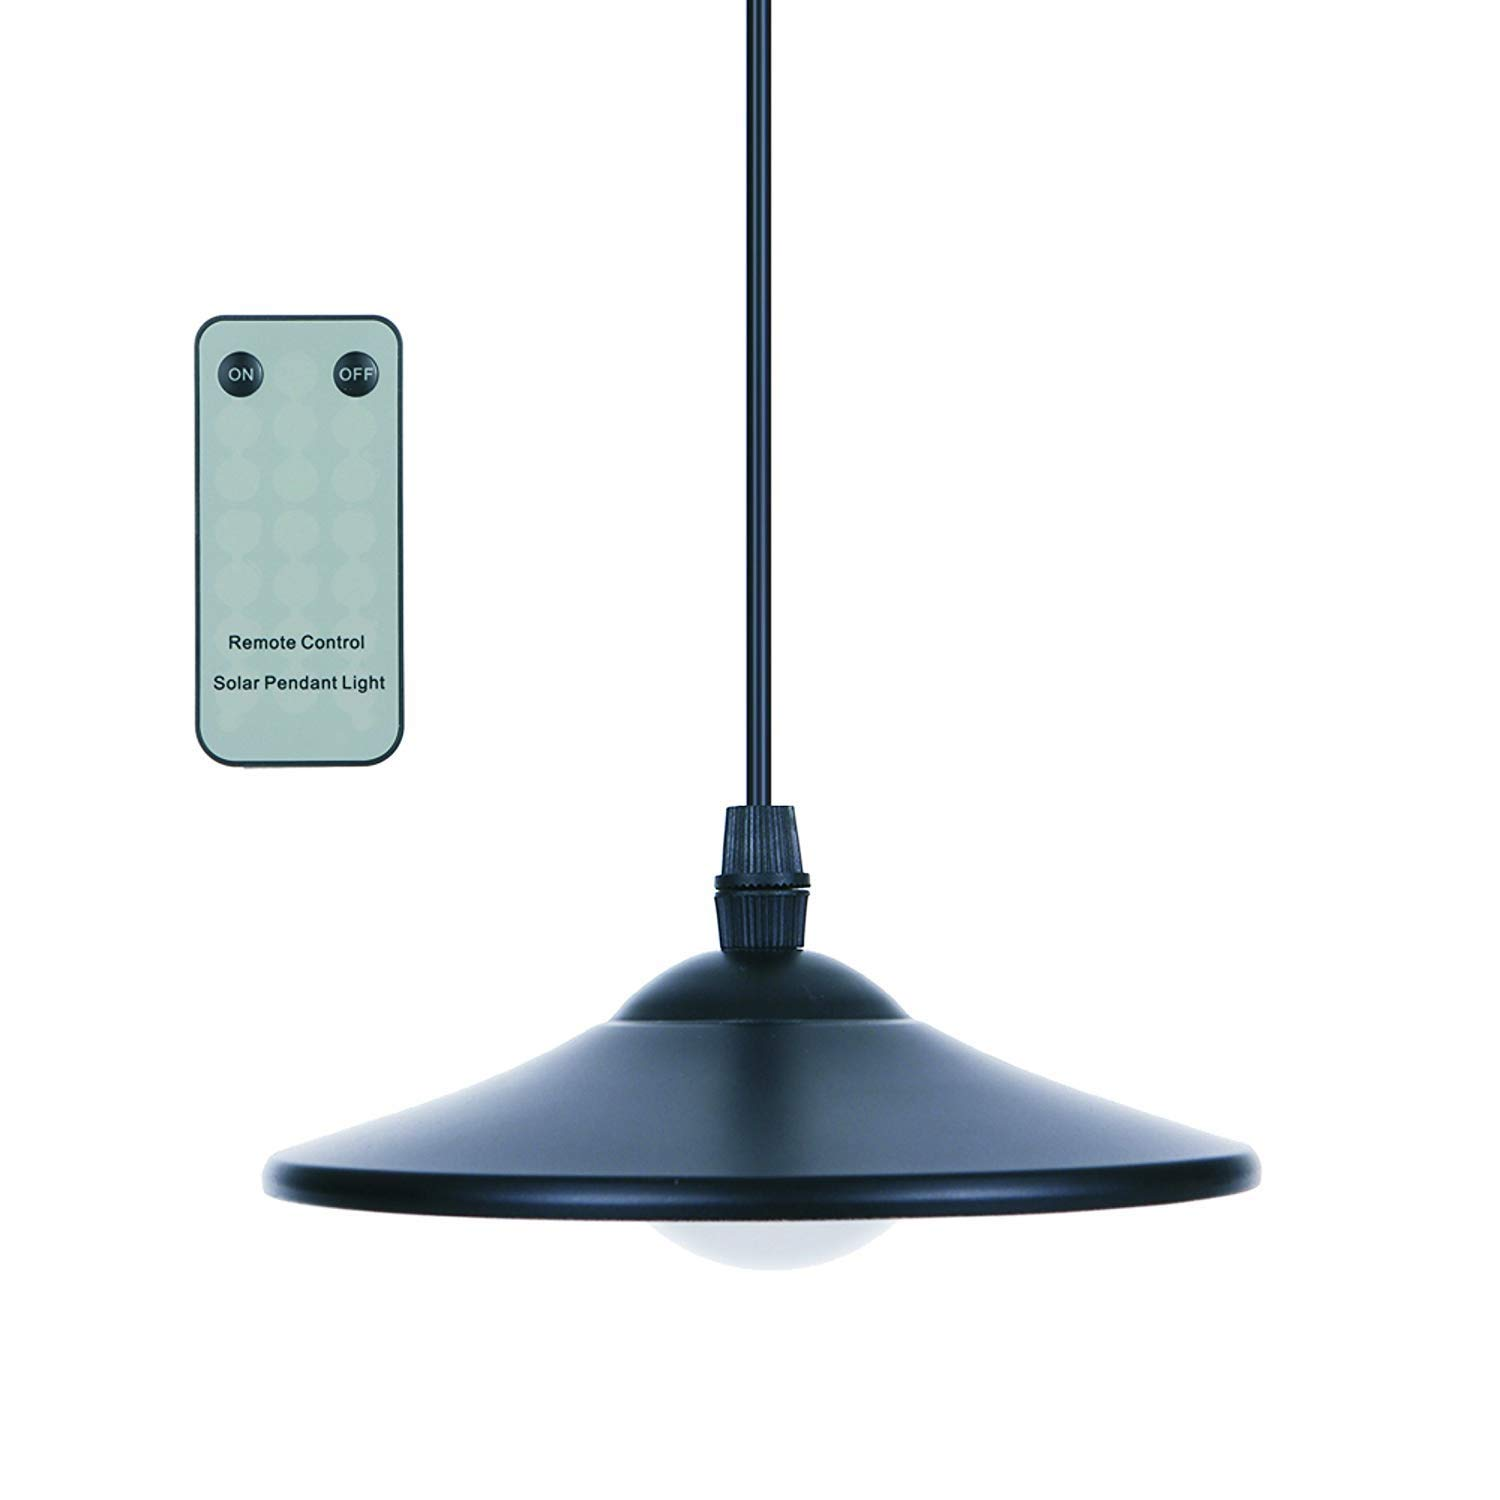 Tomshine 3W Solar Powered Pendant Light Outdoor Hanging Lamp 4 LED Shed Lights 250lm Pendant Lamp with Remote Control for Kitchen Garden Yard Patio Balcony Home Landscape by Tomshine